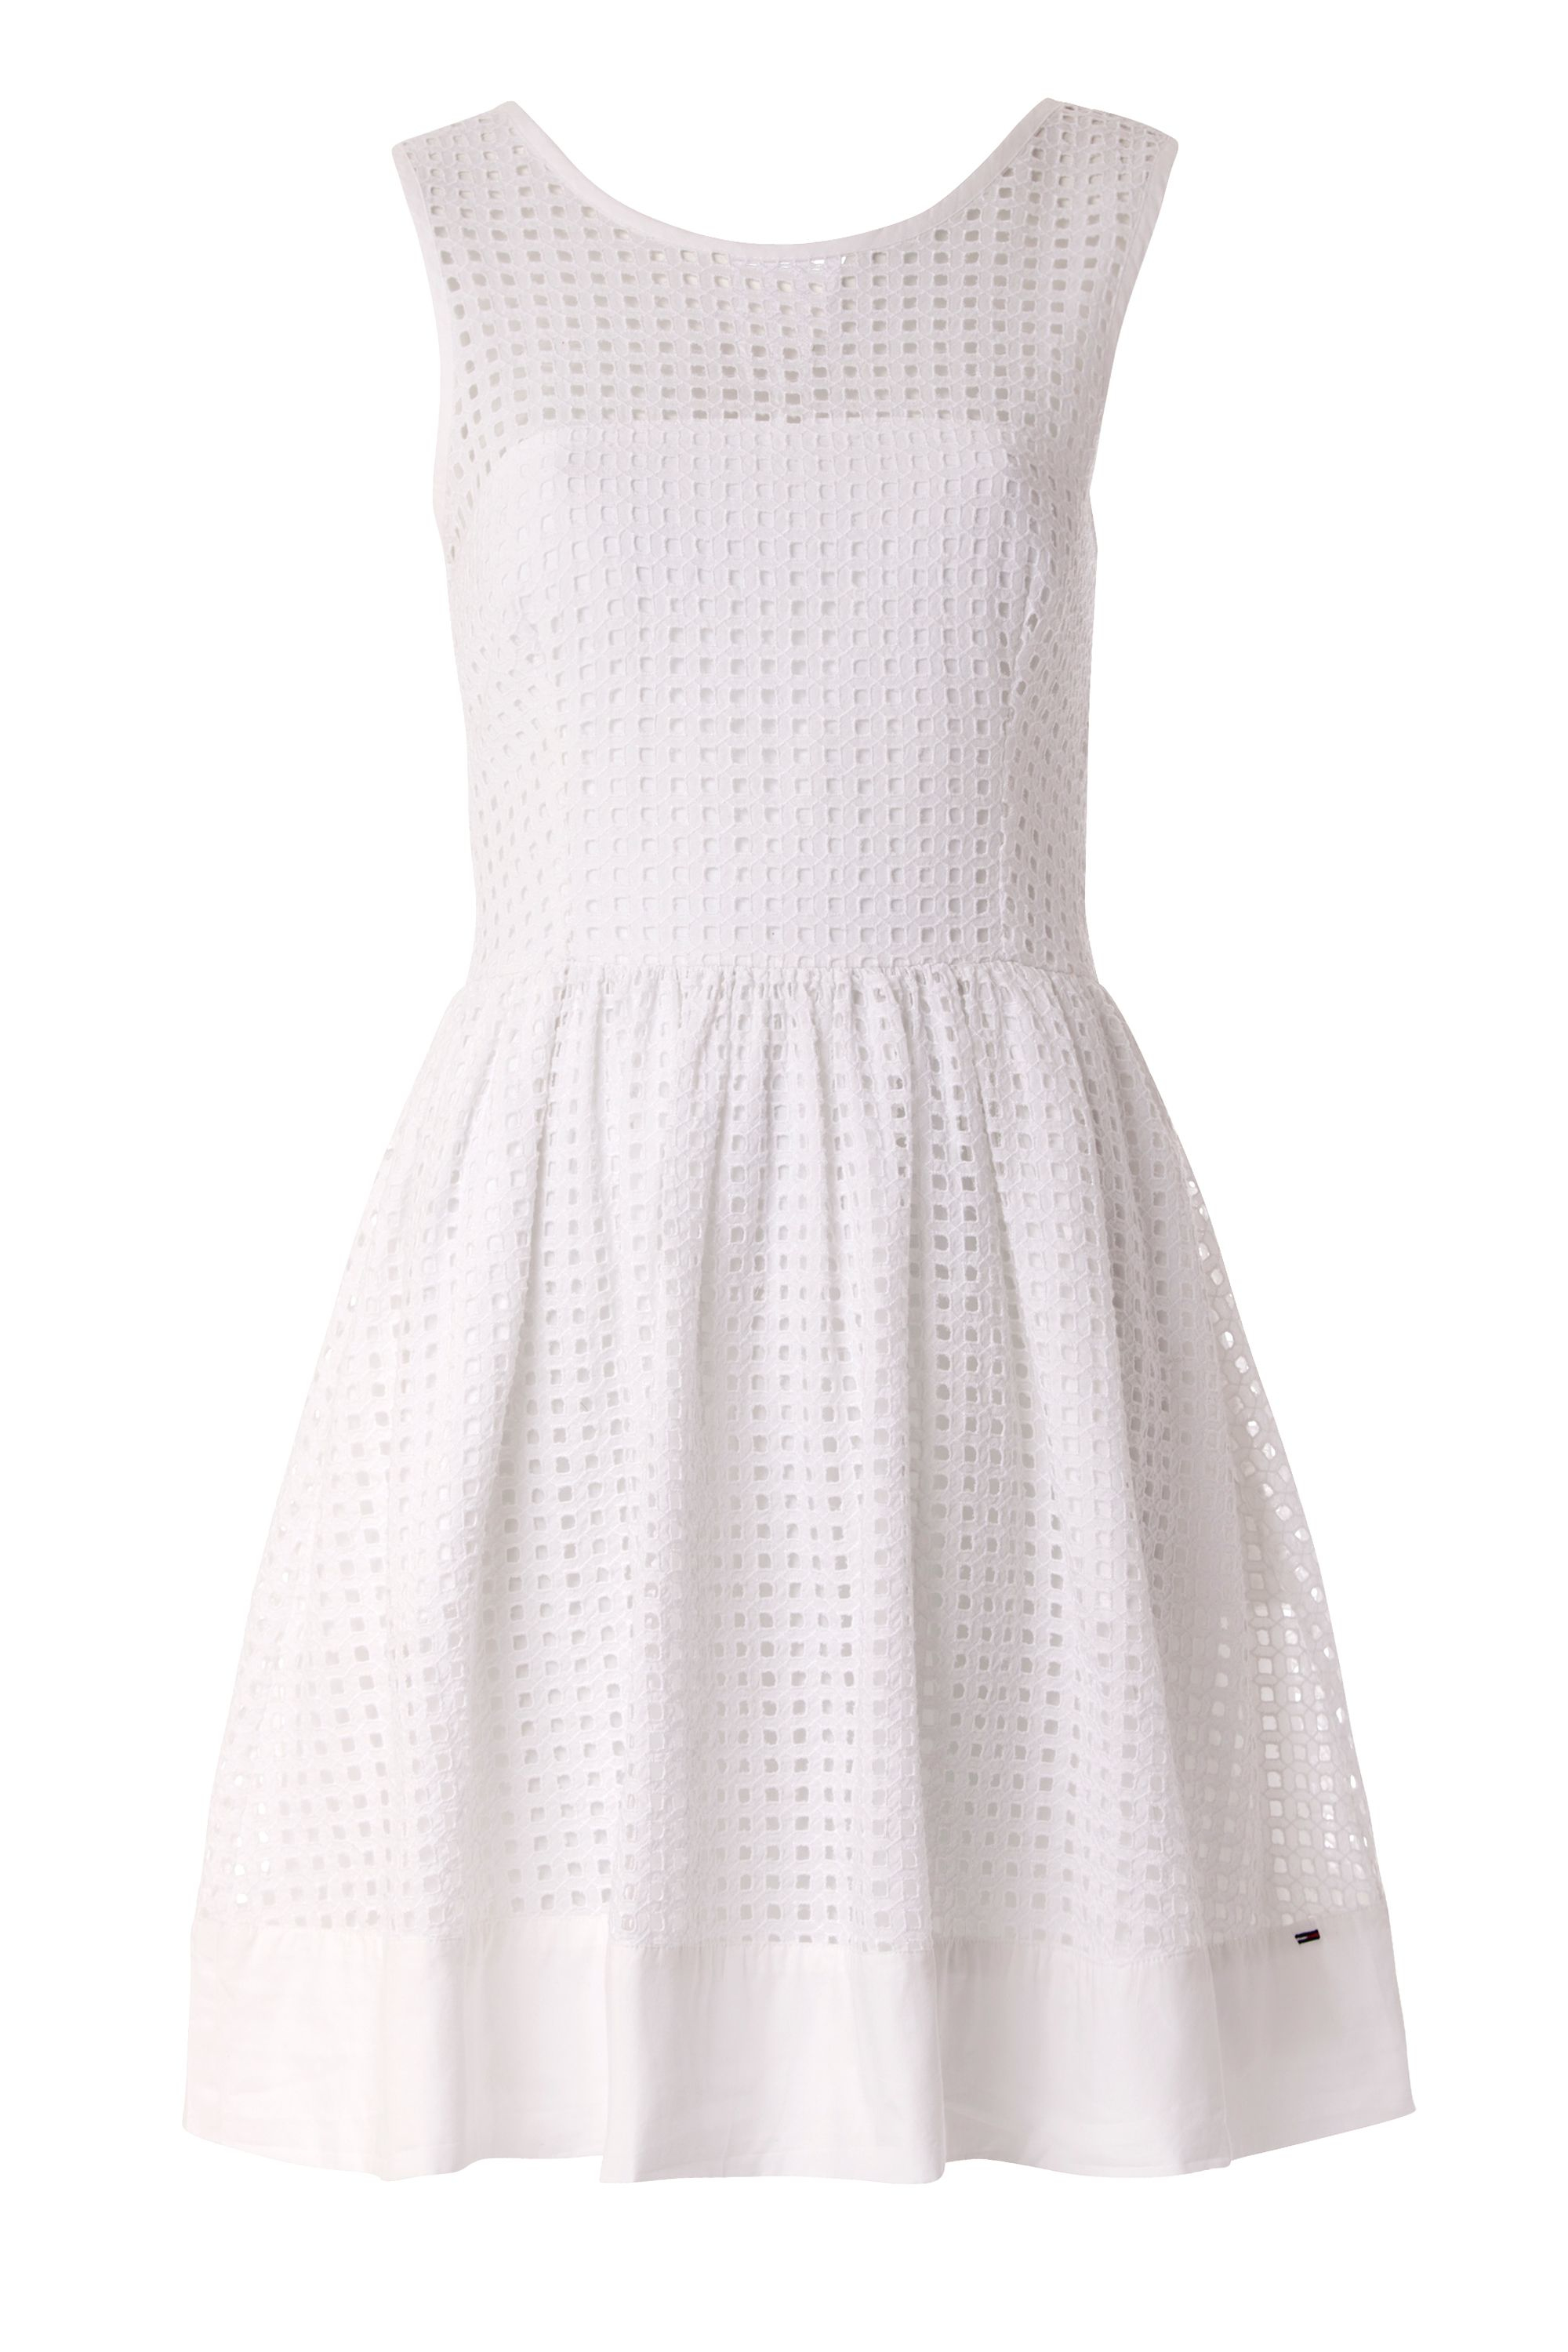 Lyst Tommy Hilfiger Gathered Skirt Dress in White